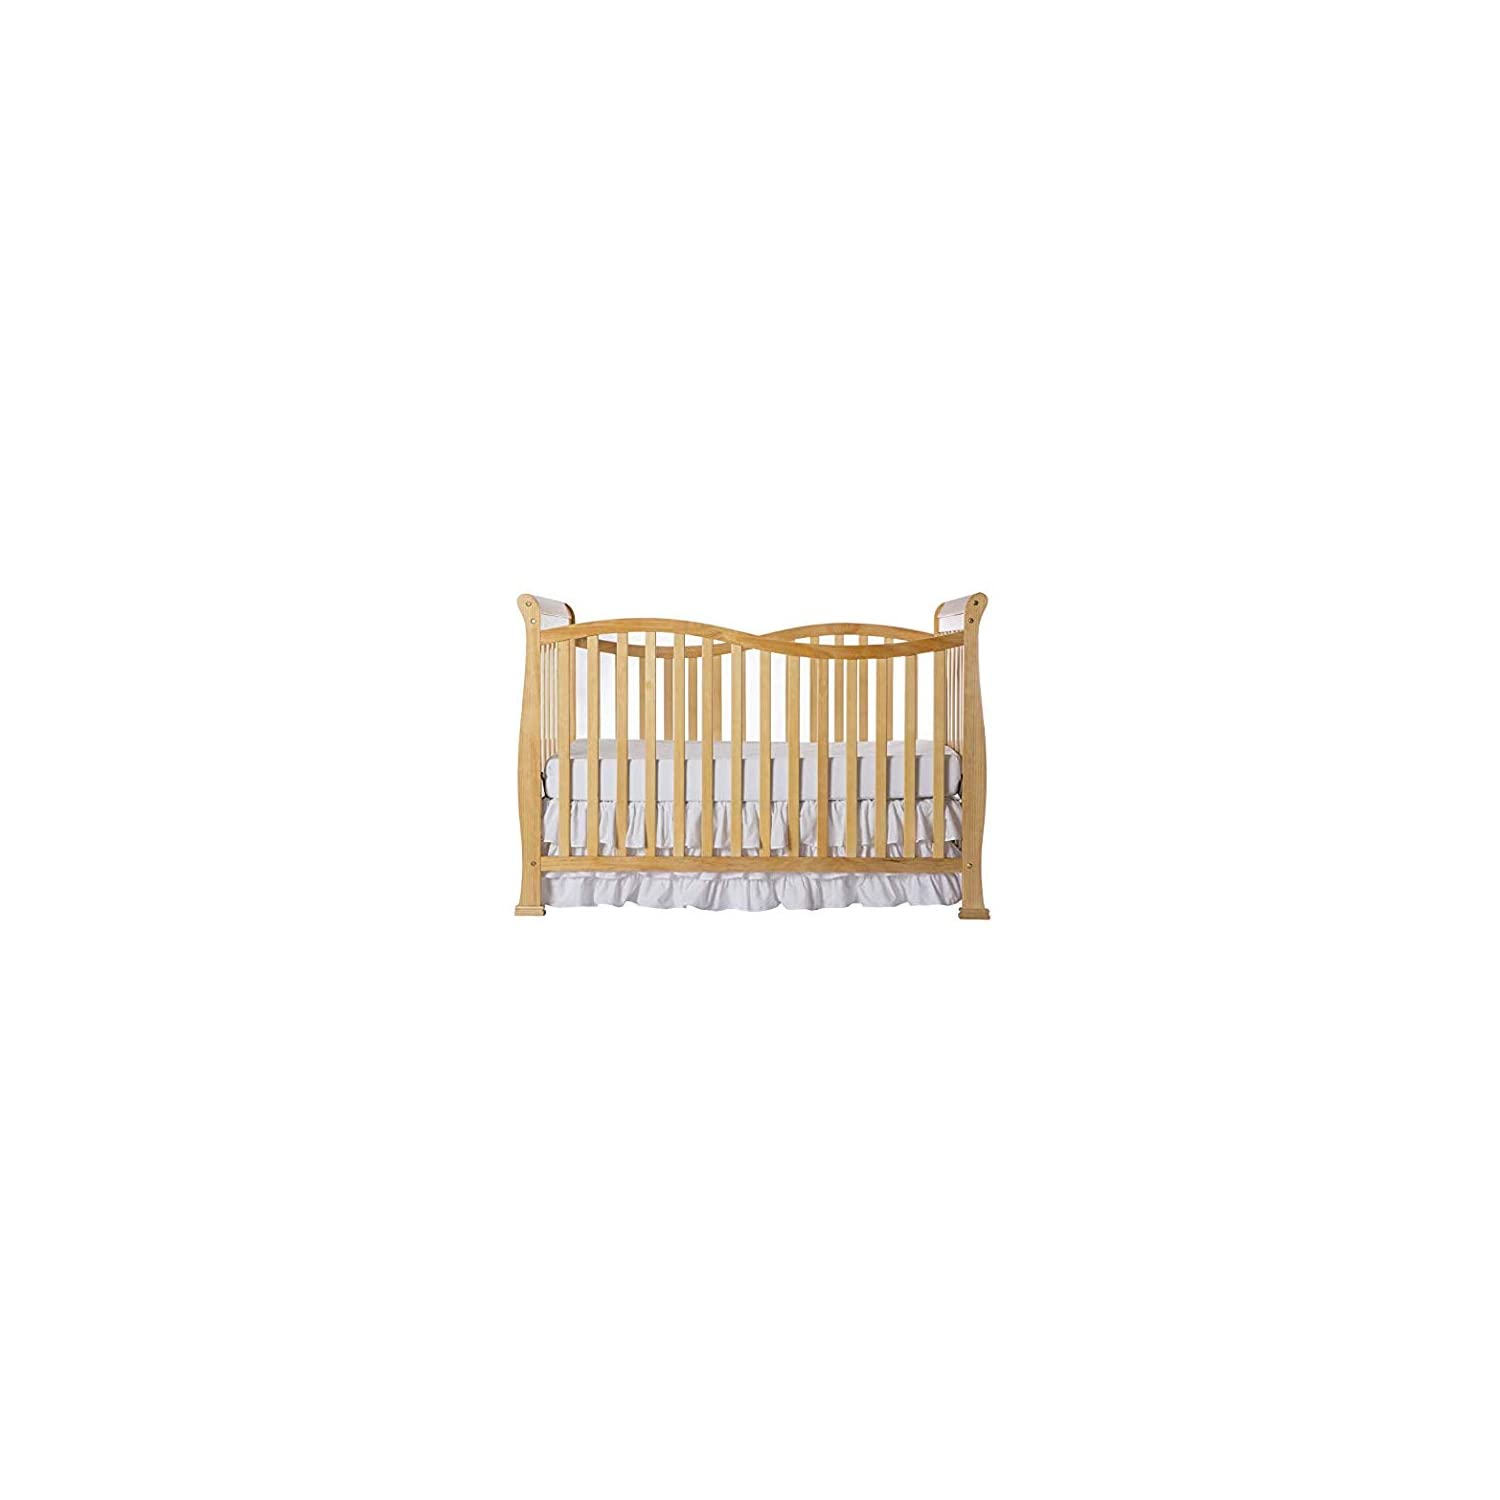 Dream On Me Violet 7 in 1 Convertible Life Style Crib, Natural with Spring Crib and Toddler Bed Mattress, Twilight